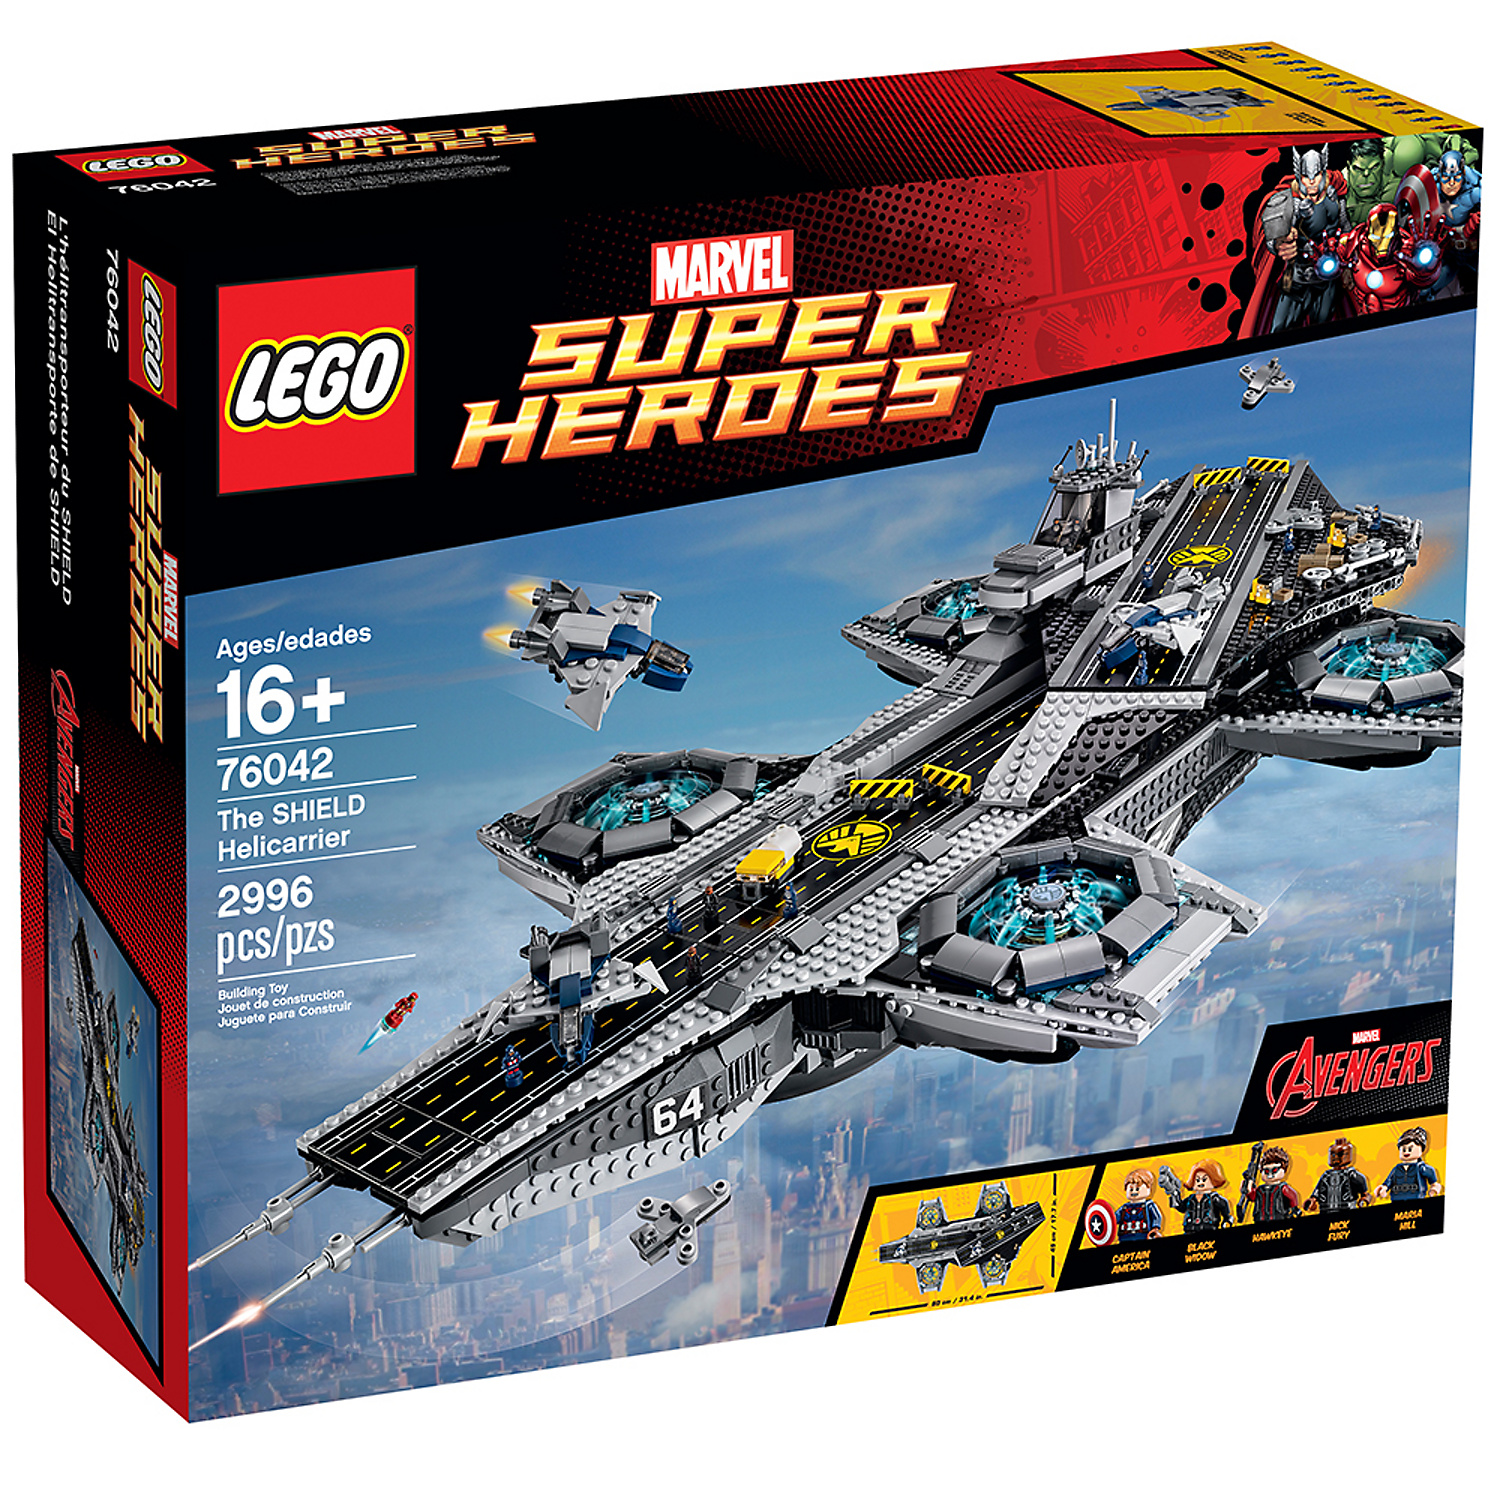 LEGO Super Heroes Marvel SHIELD Helicarrier 76042